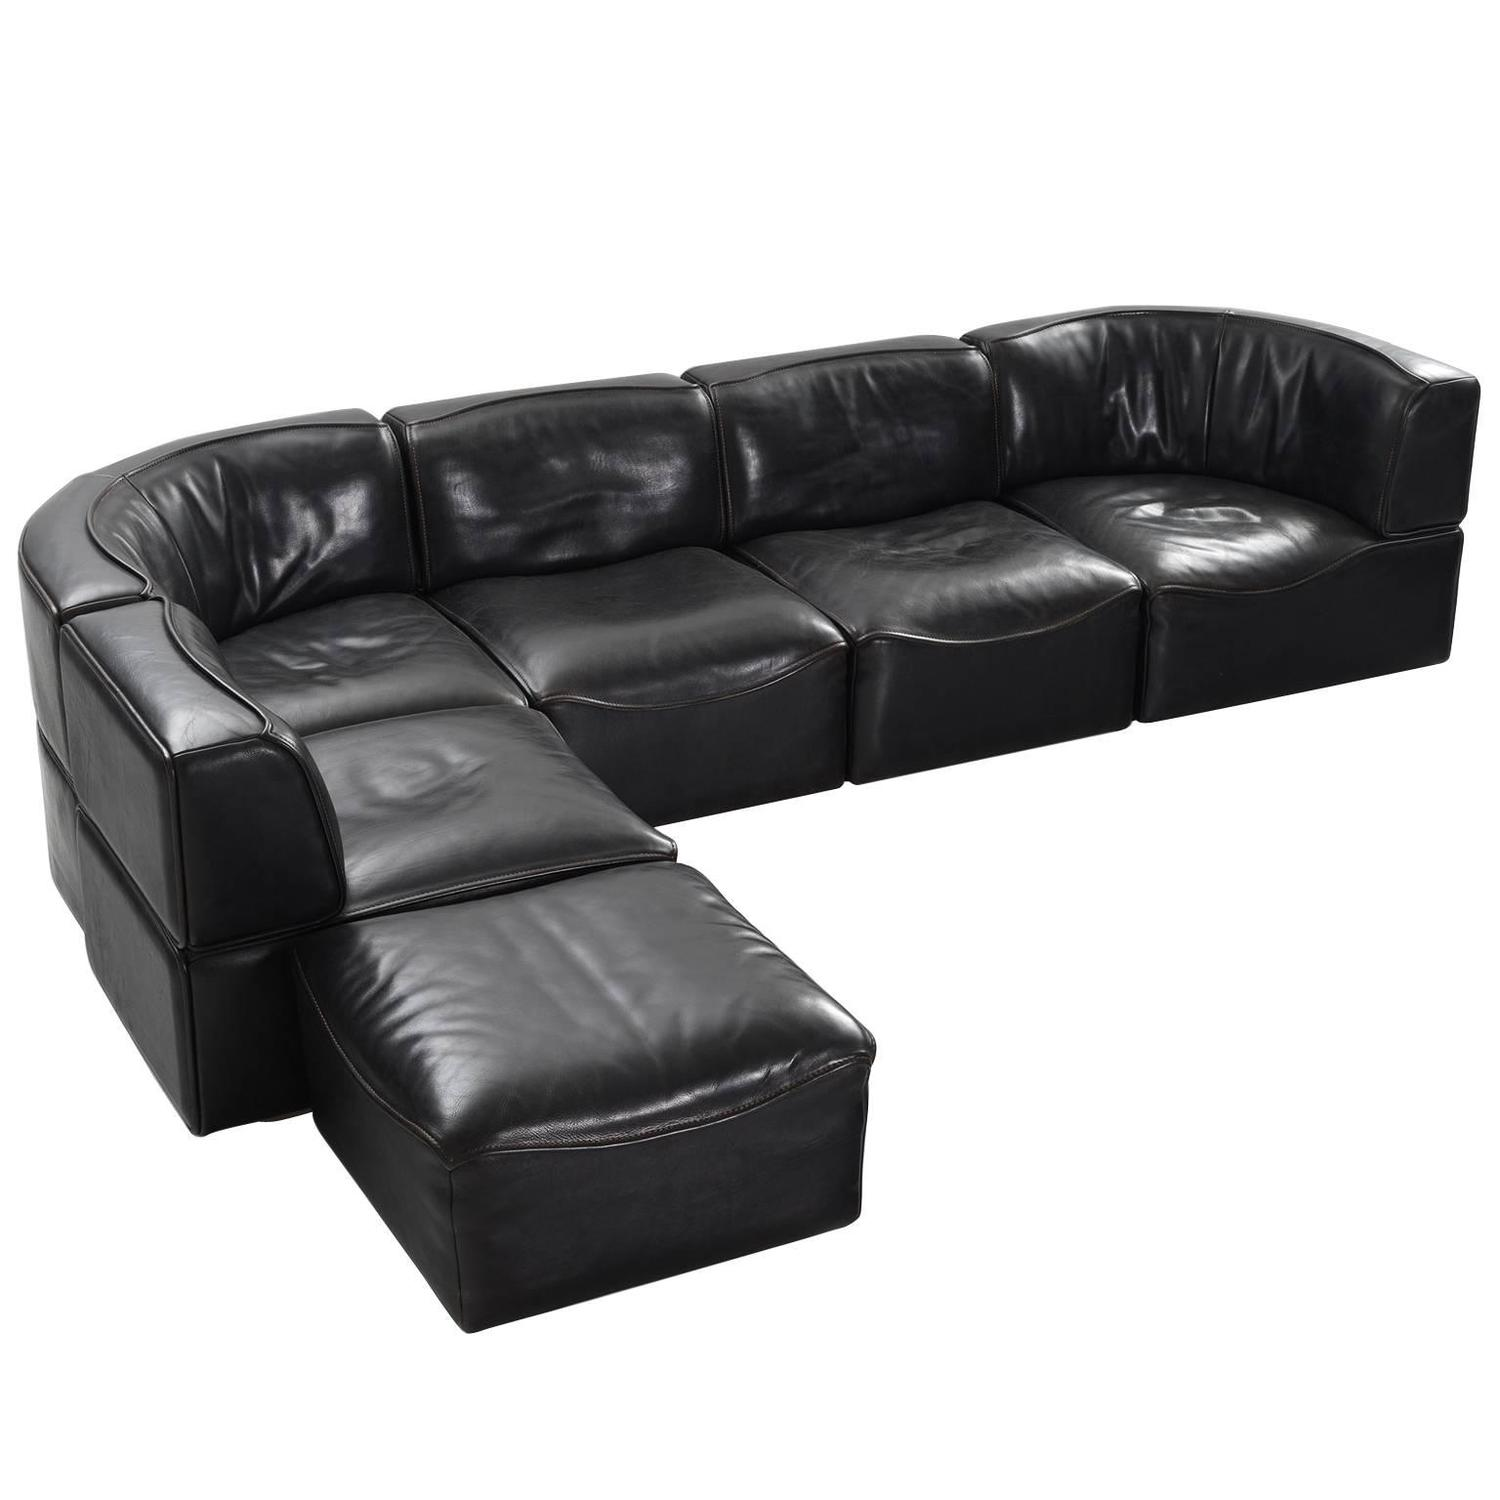 de sede 39 ds 15 39 modular sofa in black buffalo leather for sale at 1stdibs. Black Bedroom Furniture Sets. Home Design Ideas